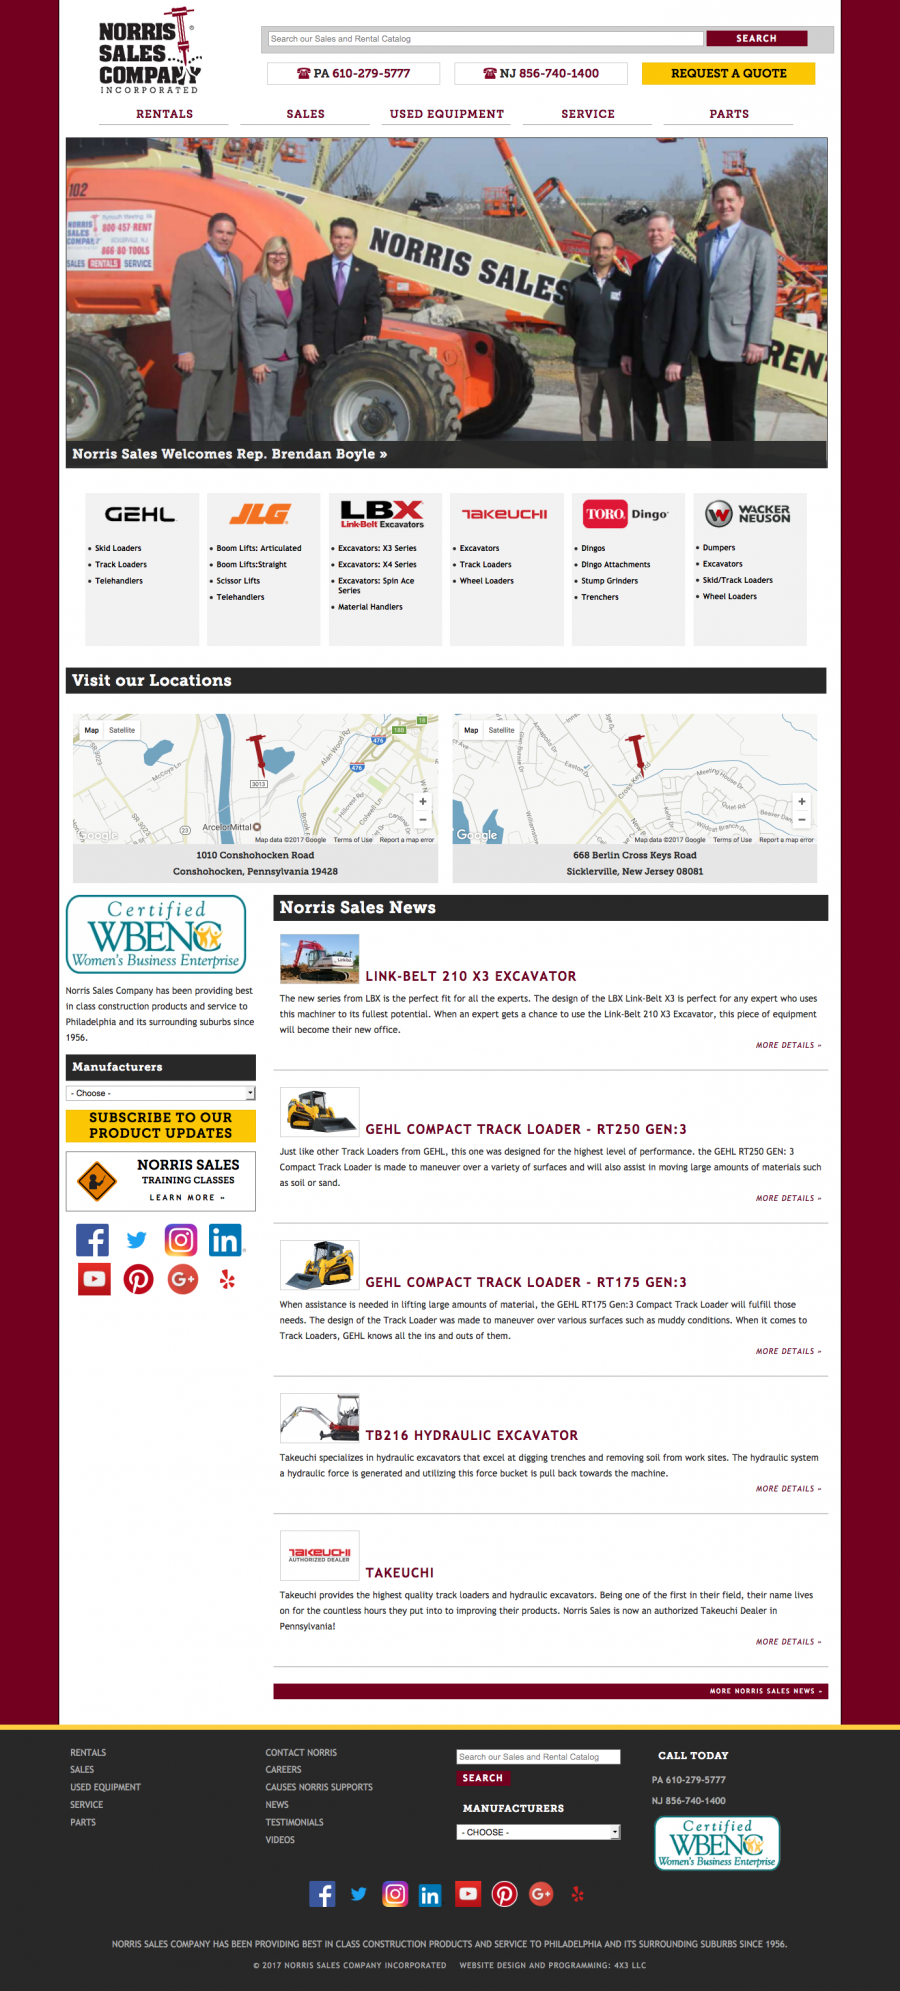 Norris Sales, Homepage featuring News, Maps, Manufacturers